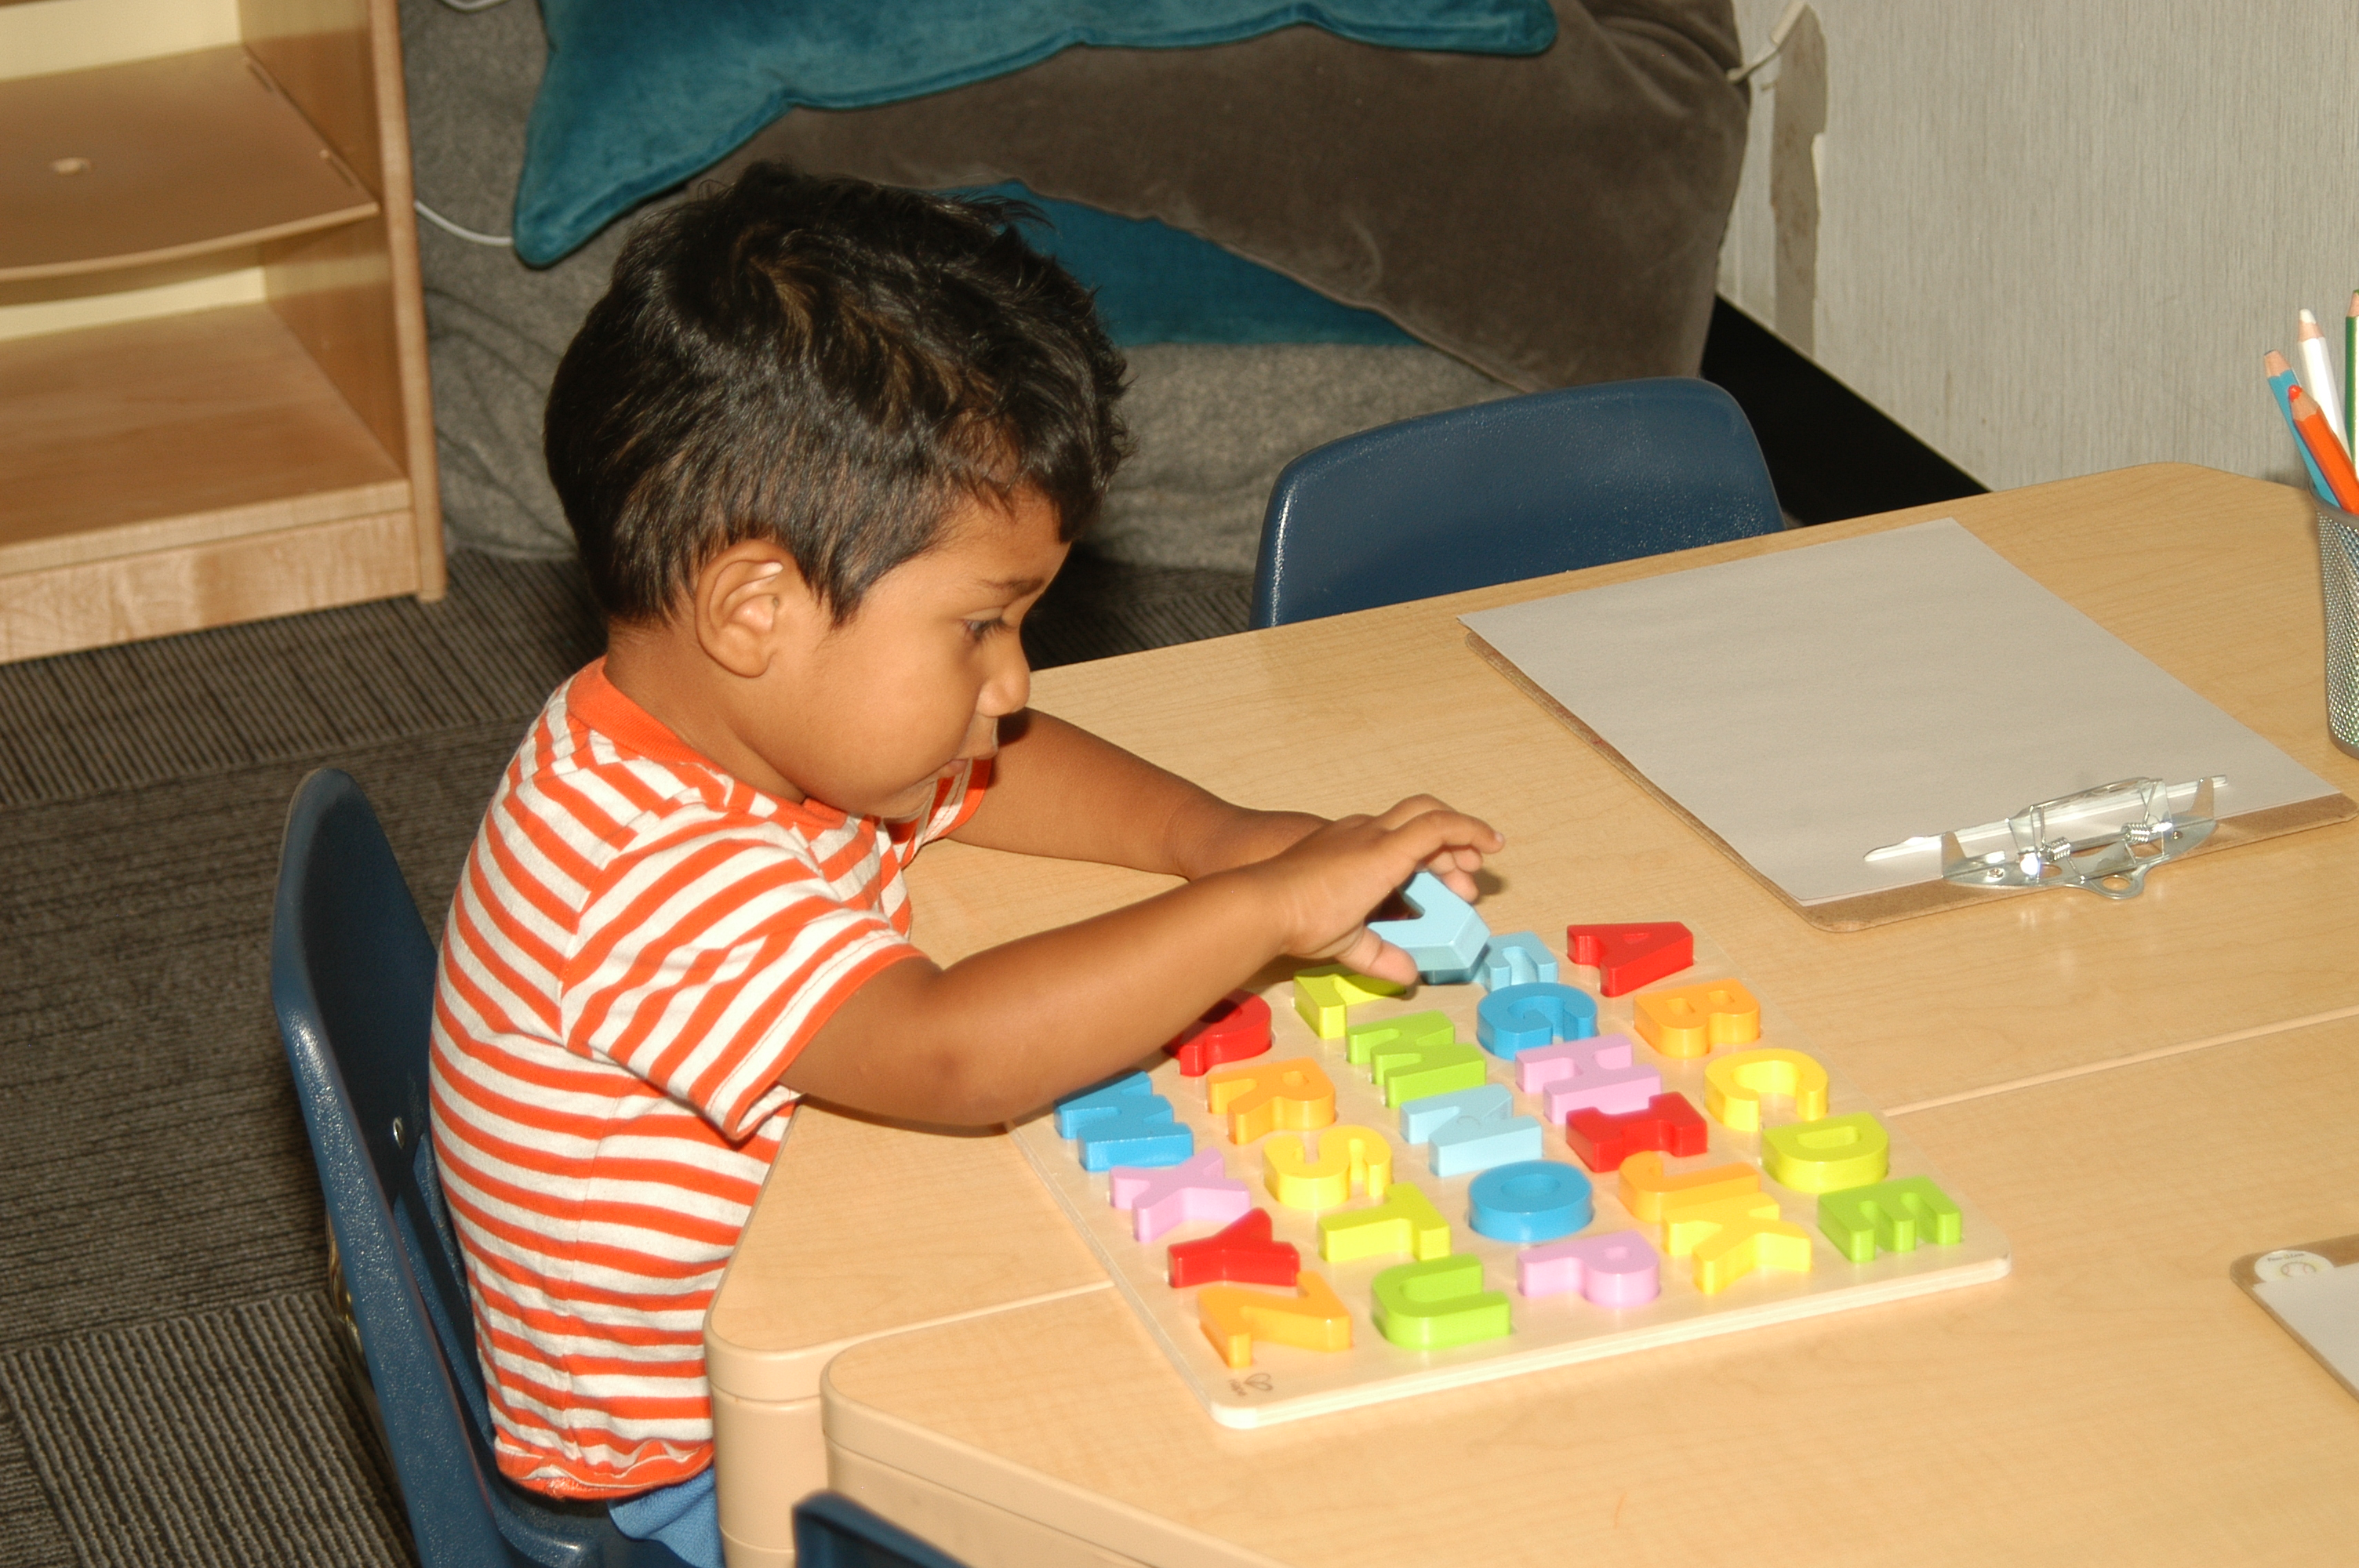 Children's Center - Child Playing with Letters